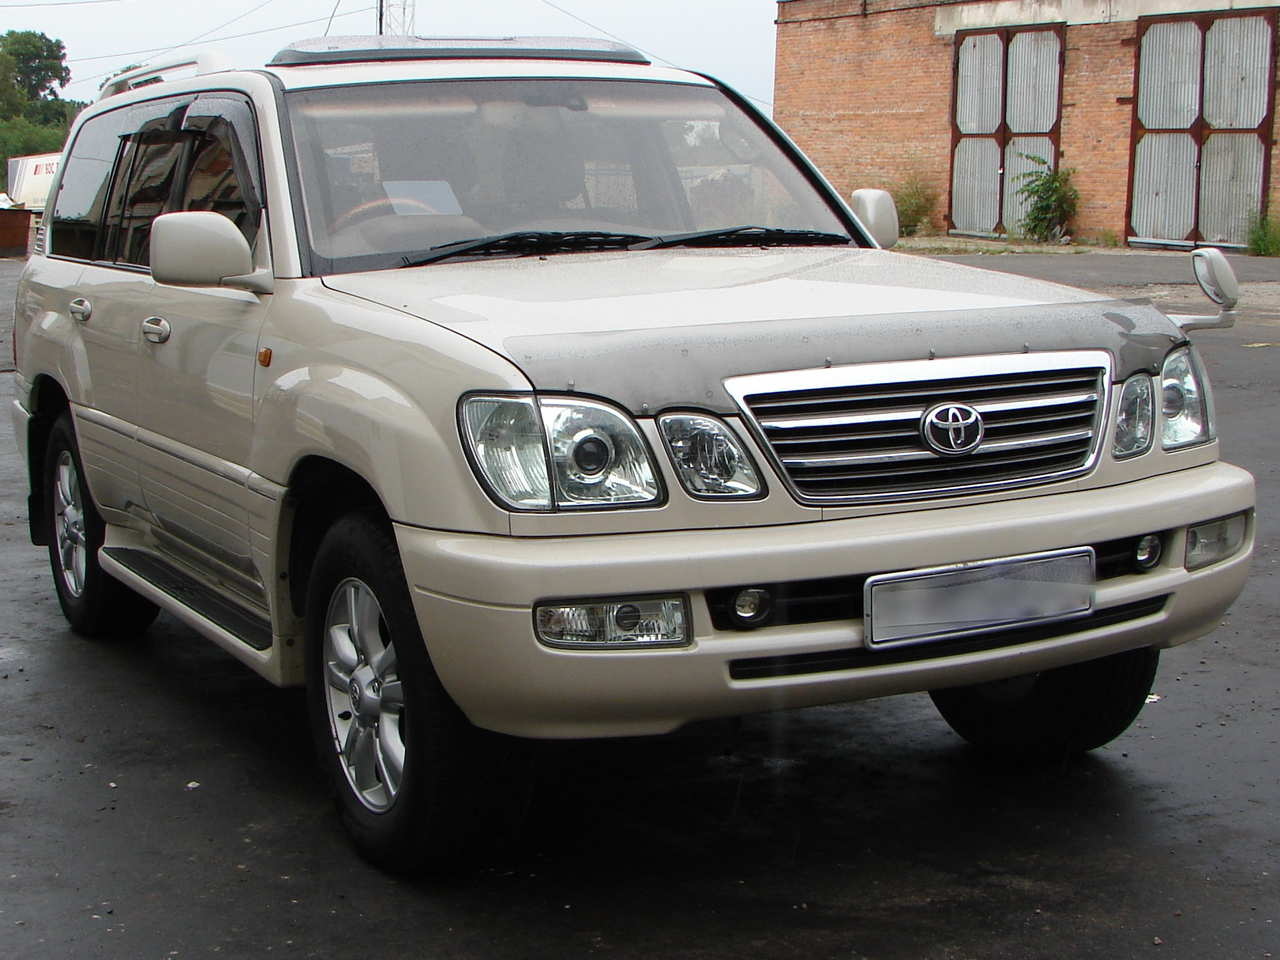 2002 Toyota Land Cruiser #11